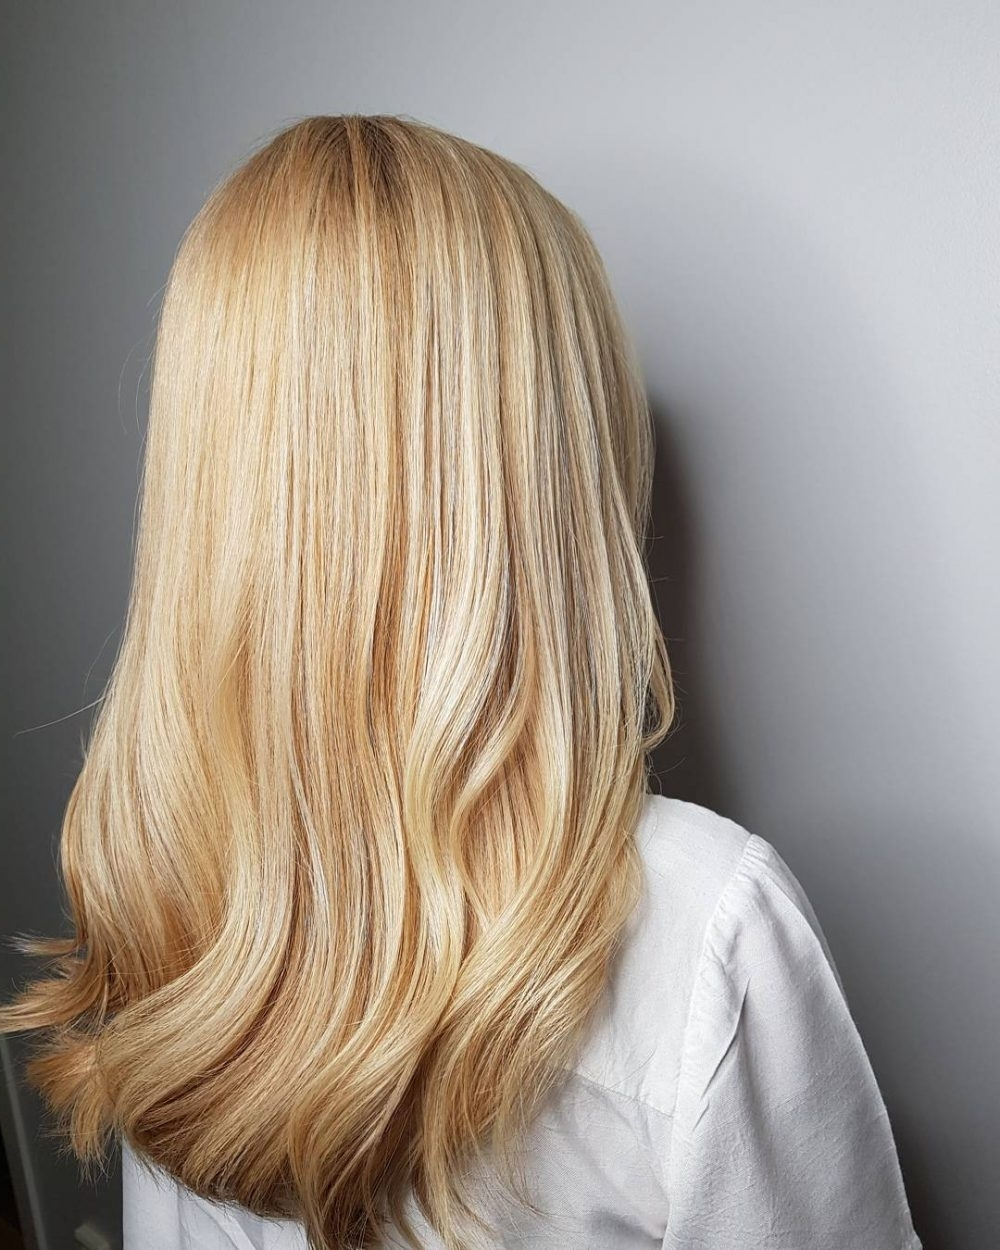 21 Hottest Honey Blonde Hair Color Ideas Of 2018 Regarding Well Known Cream Colored Bob Blonde Hairstyles (View 15 of 20)